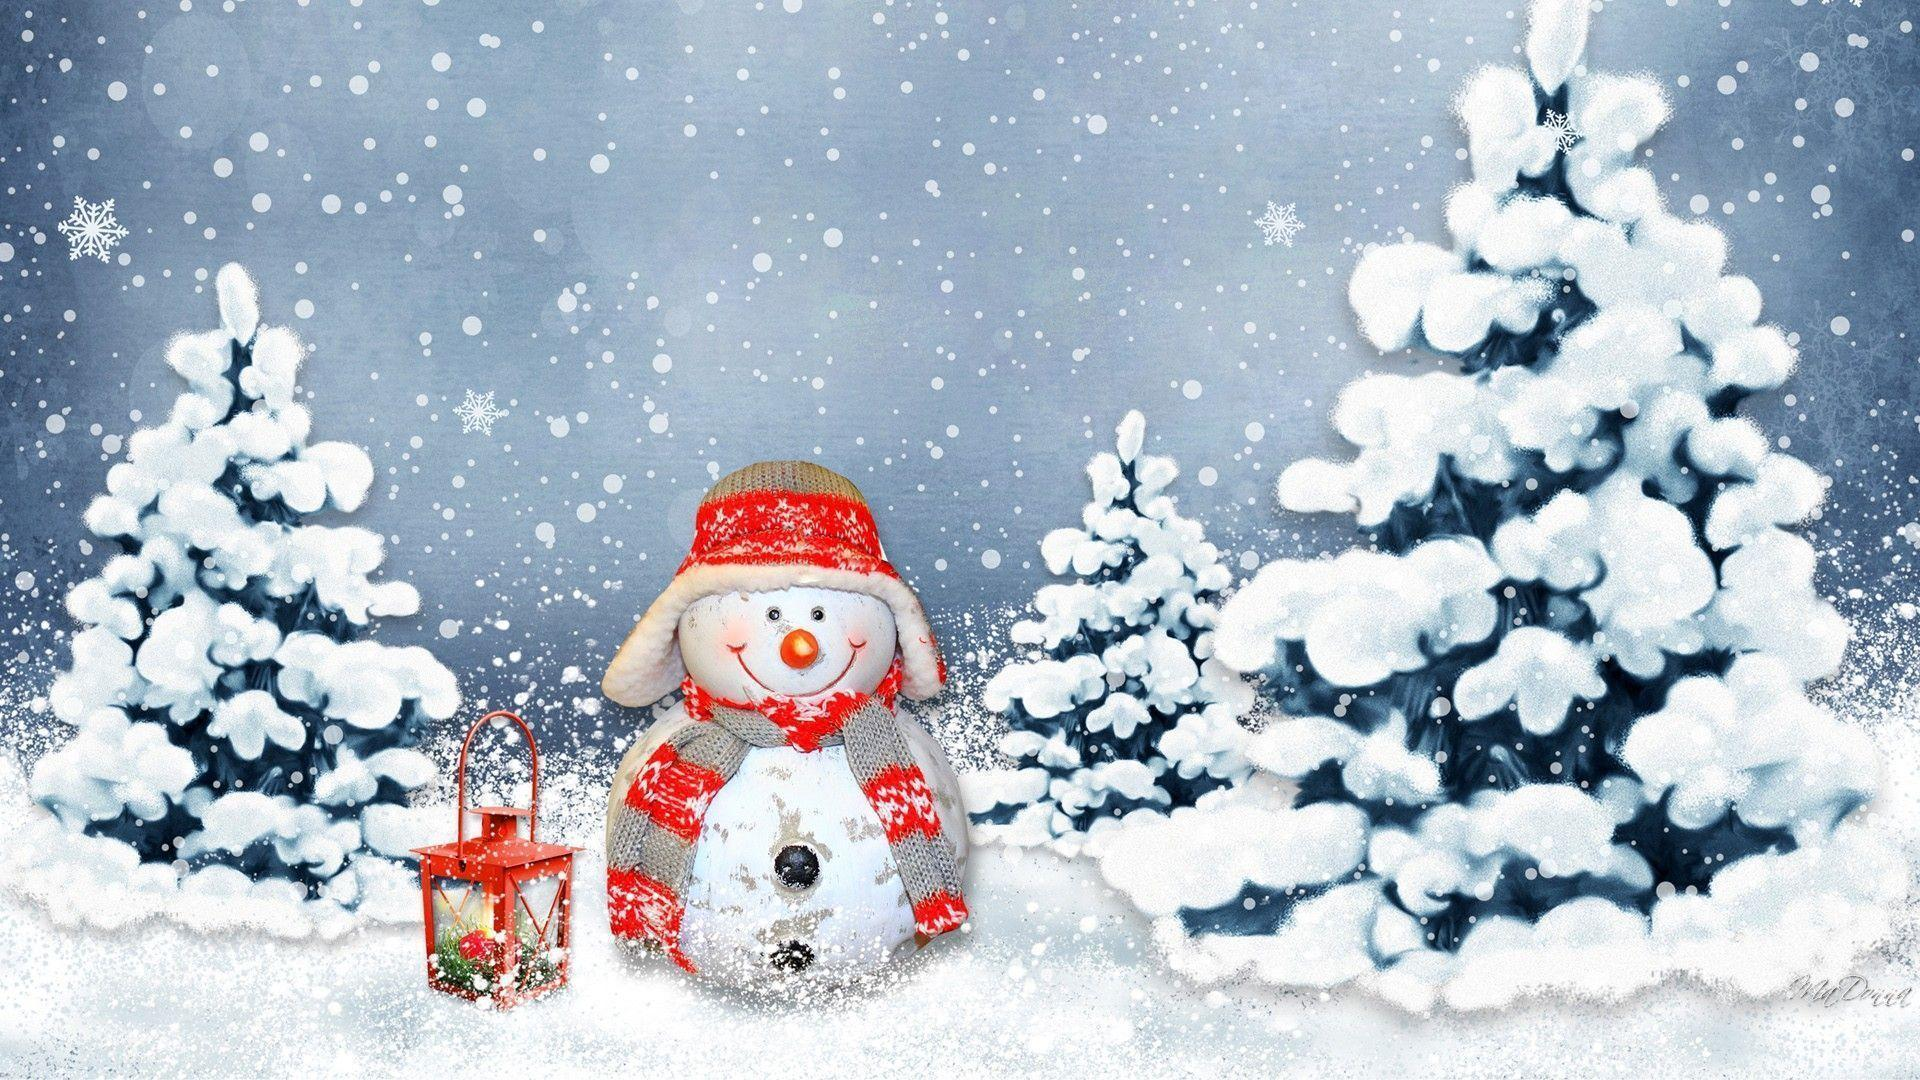 tag snowman desktop wallpapers - photo #10